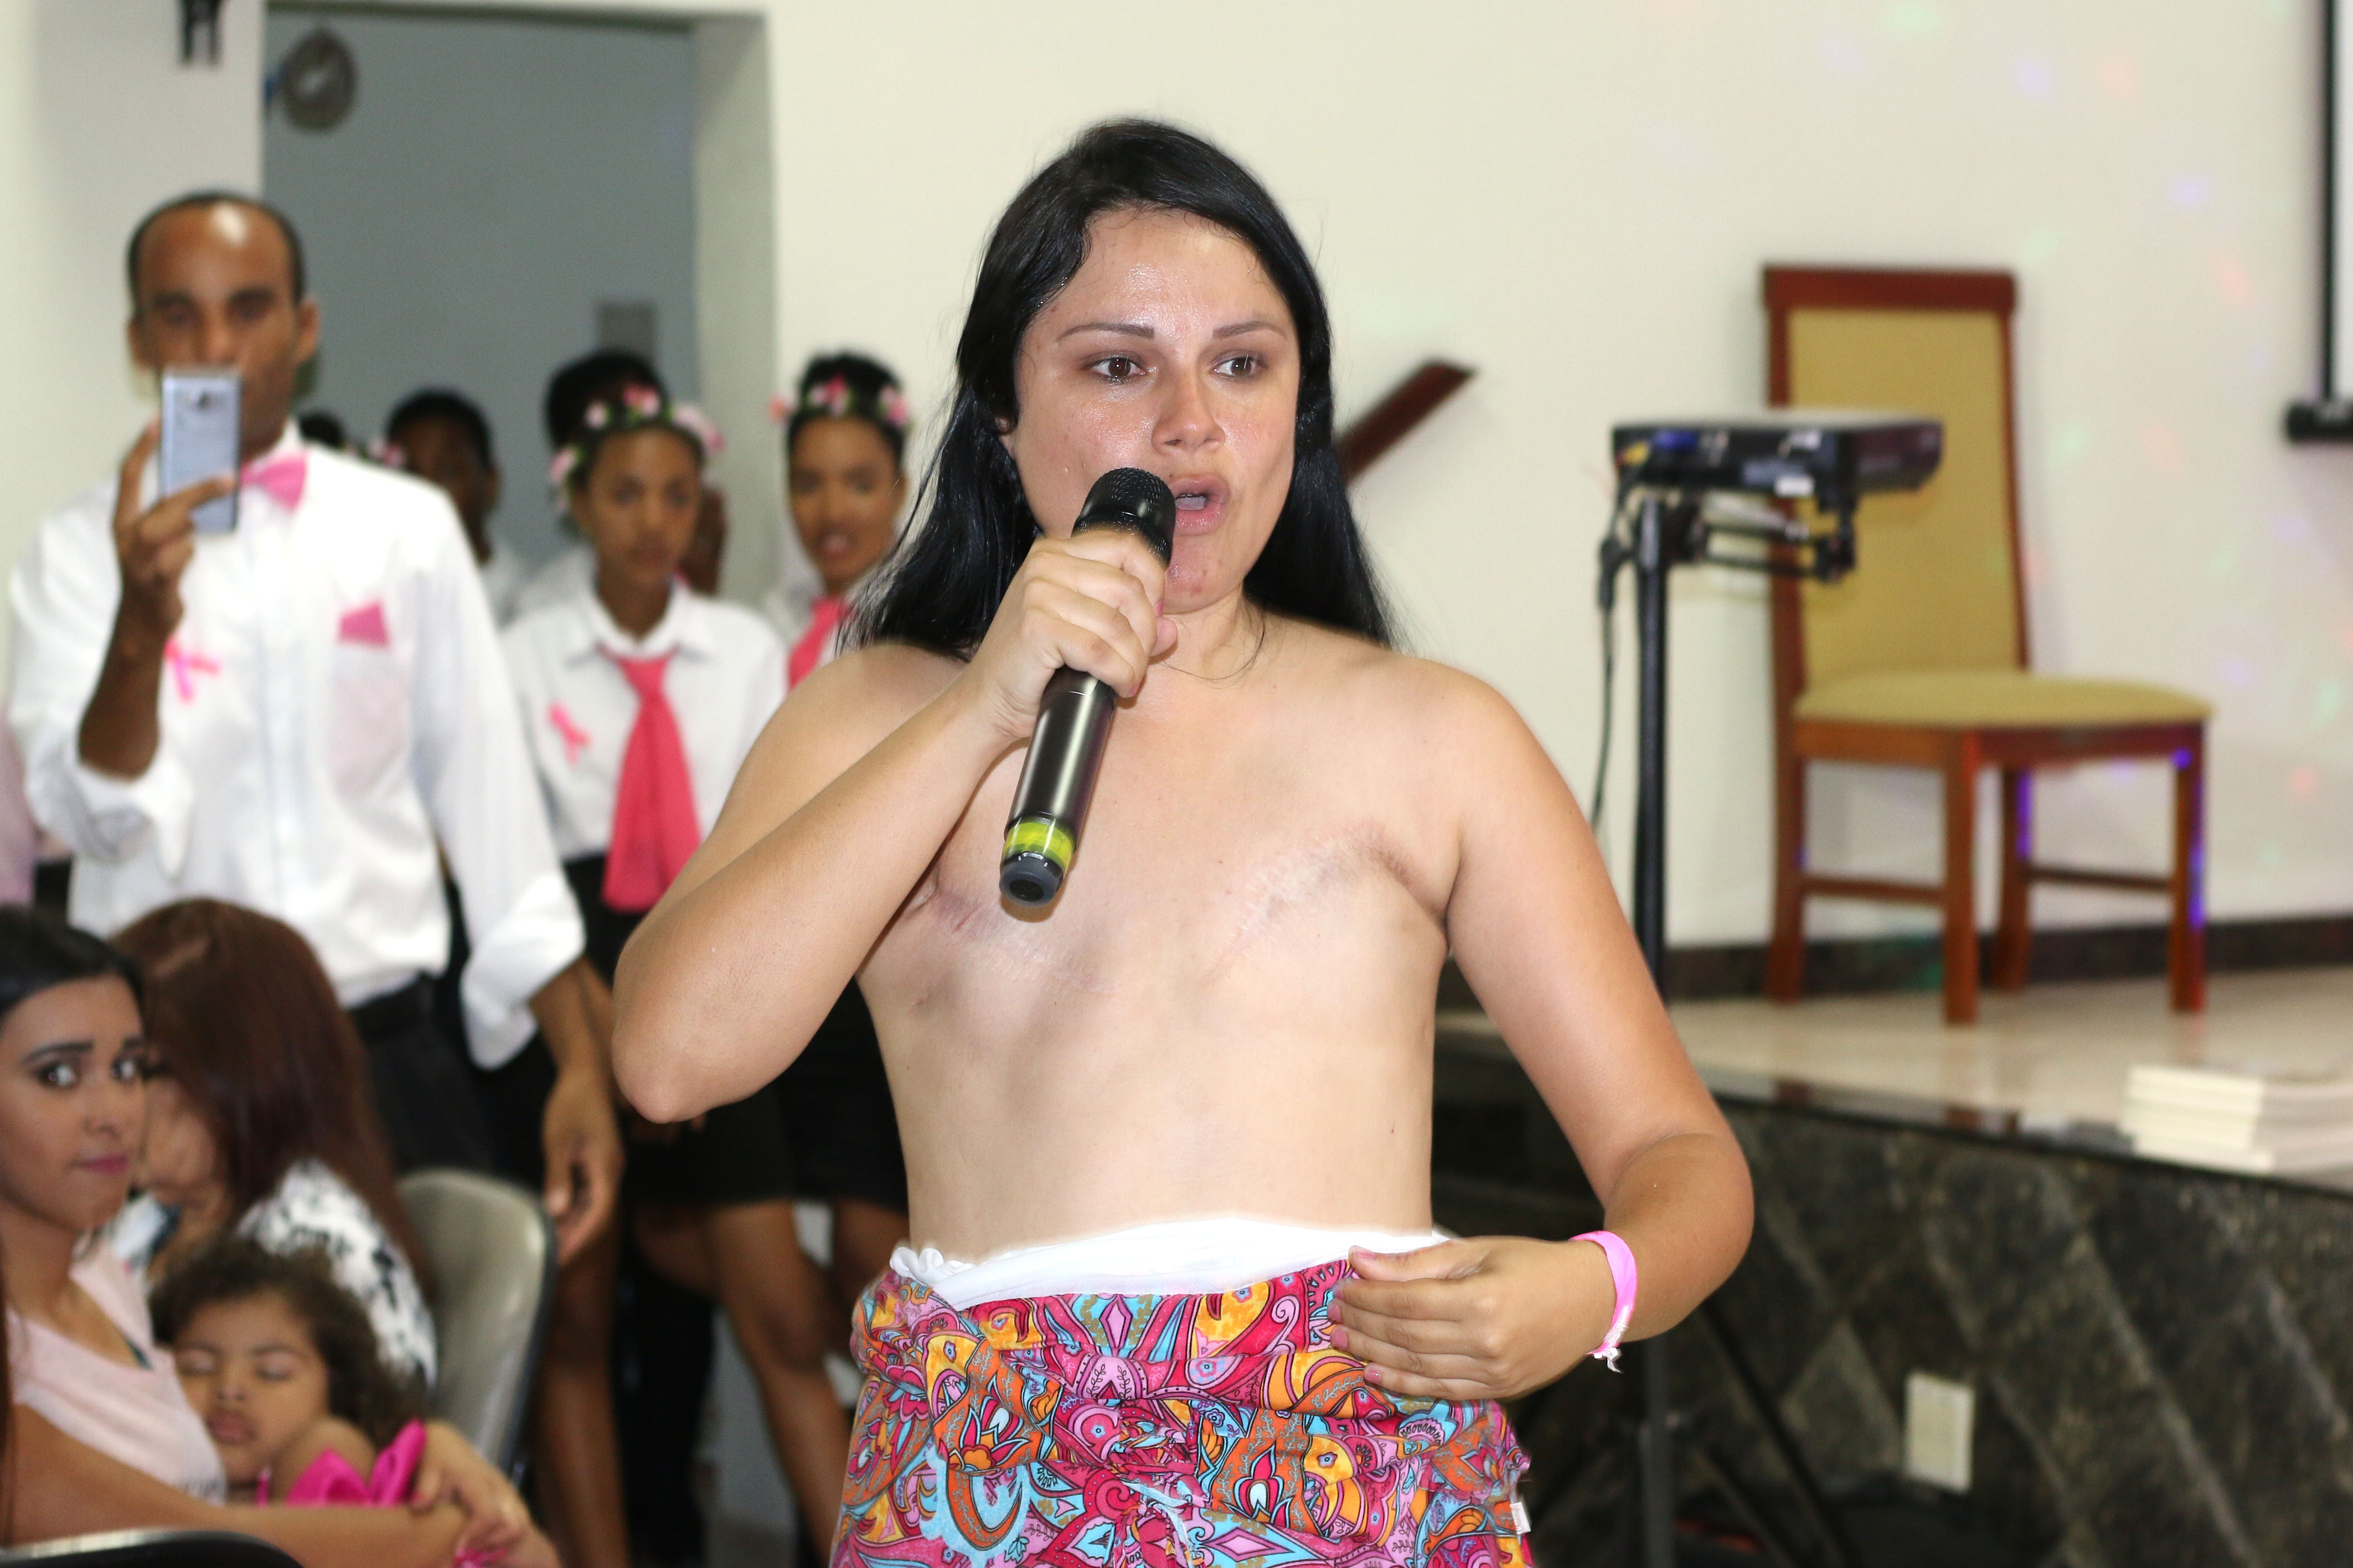 the woman who takes her top off in church caters news agency